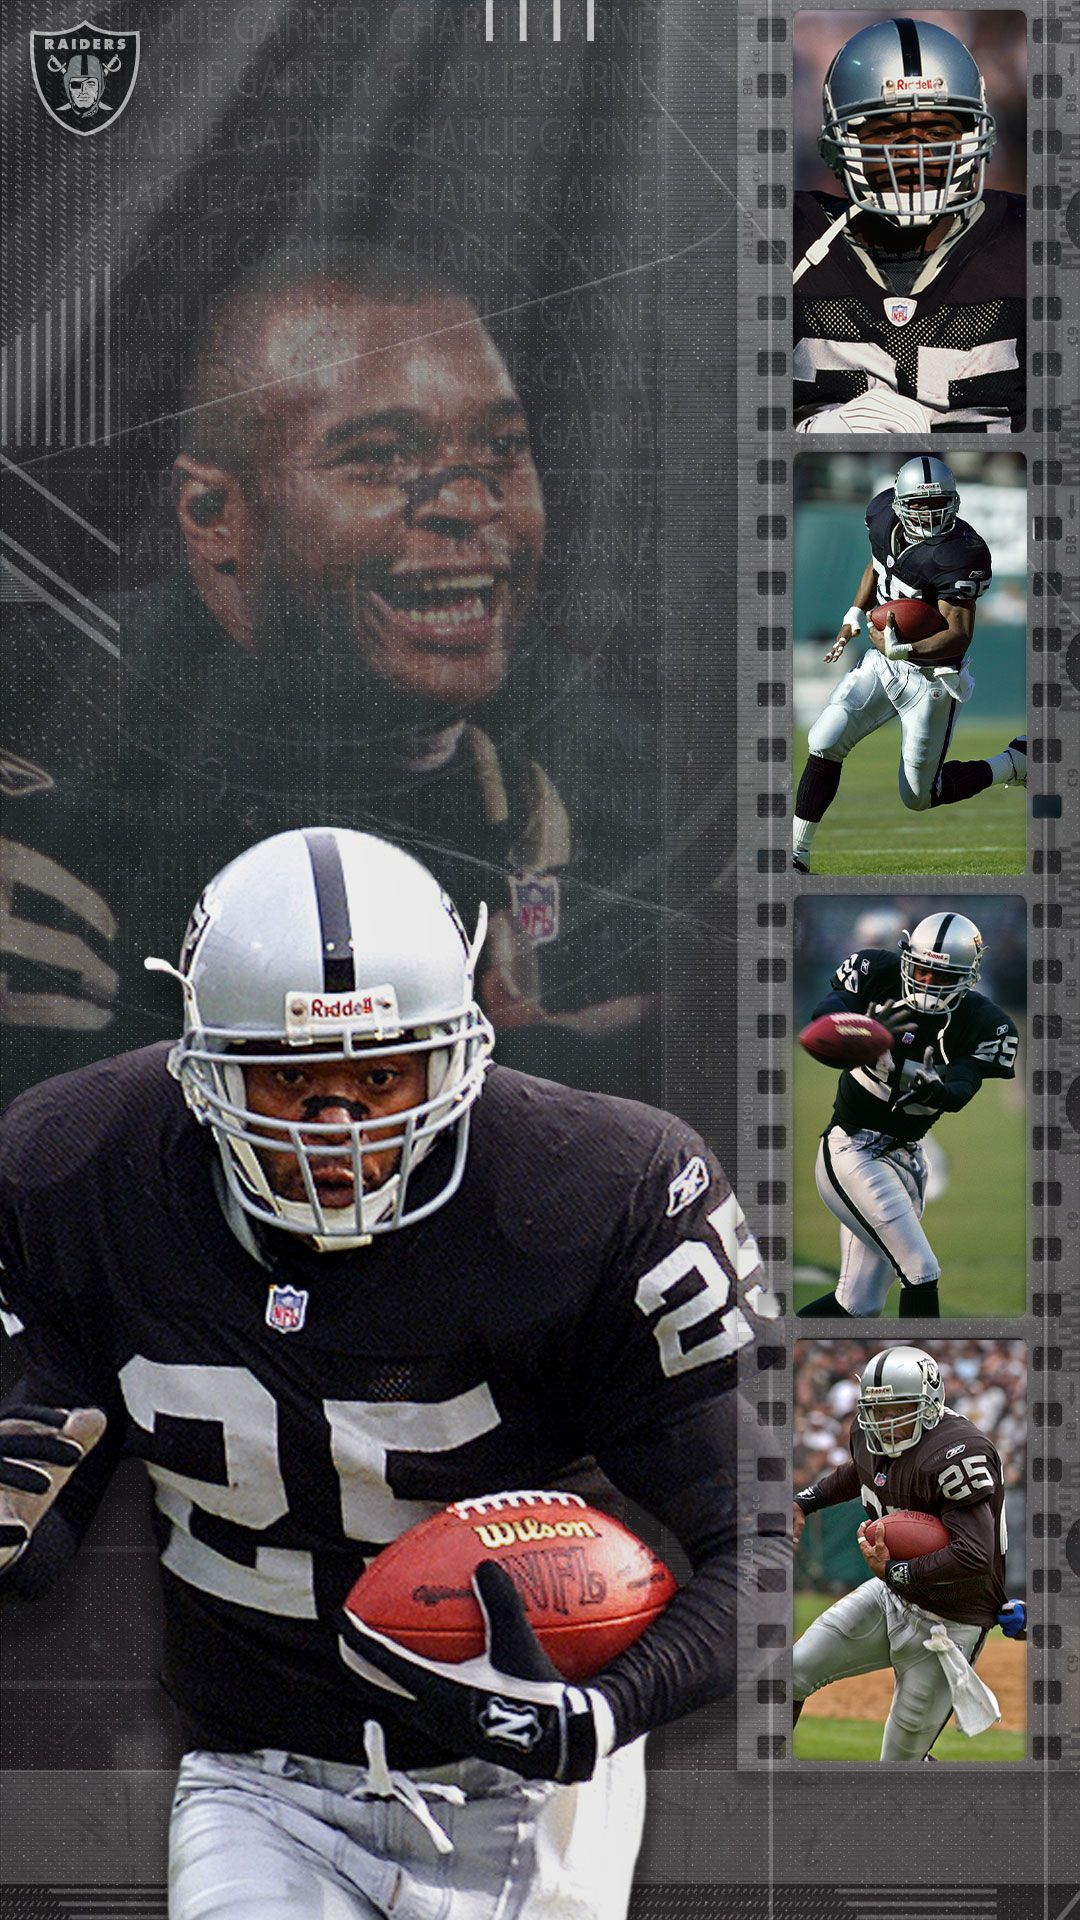 Oakland Raiders Android Background Oakland raiders